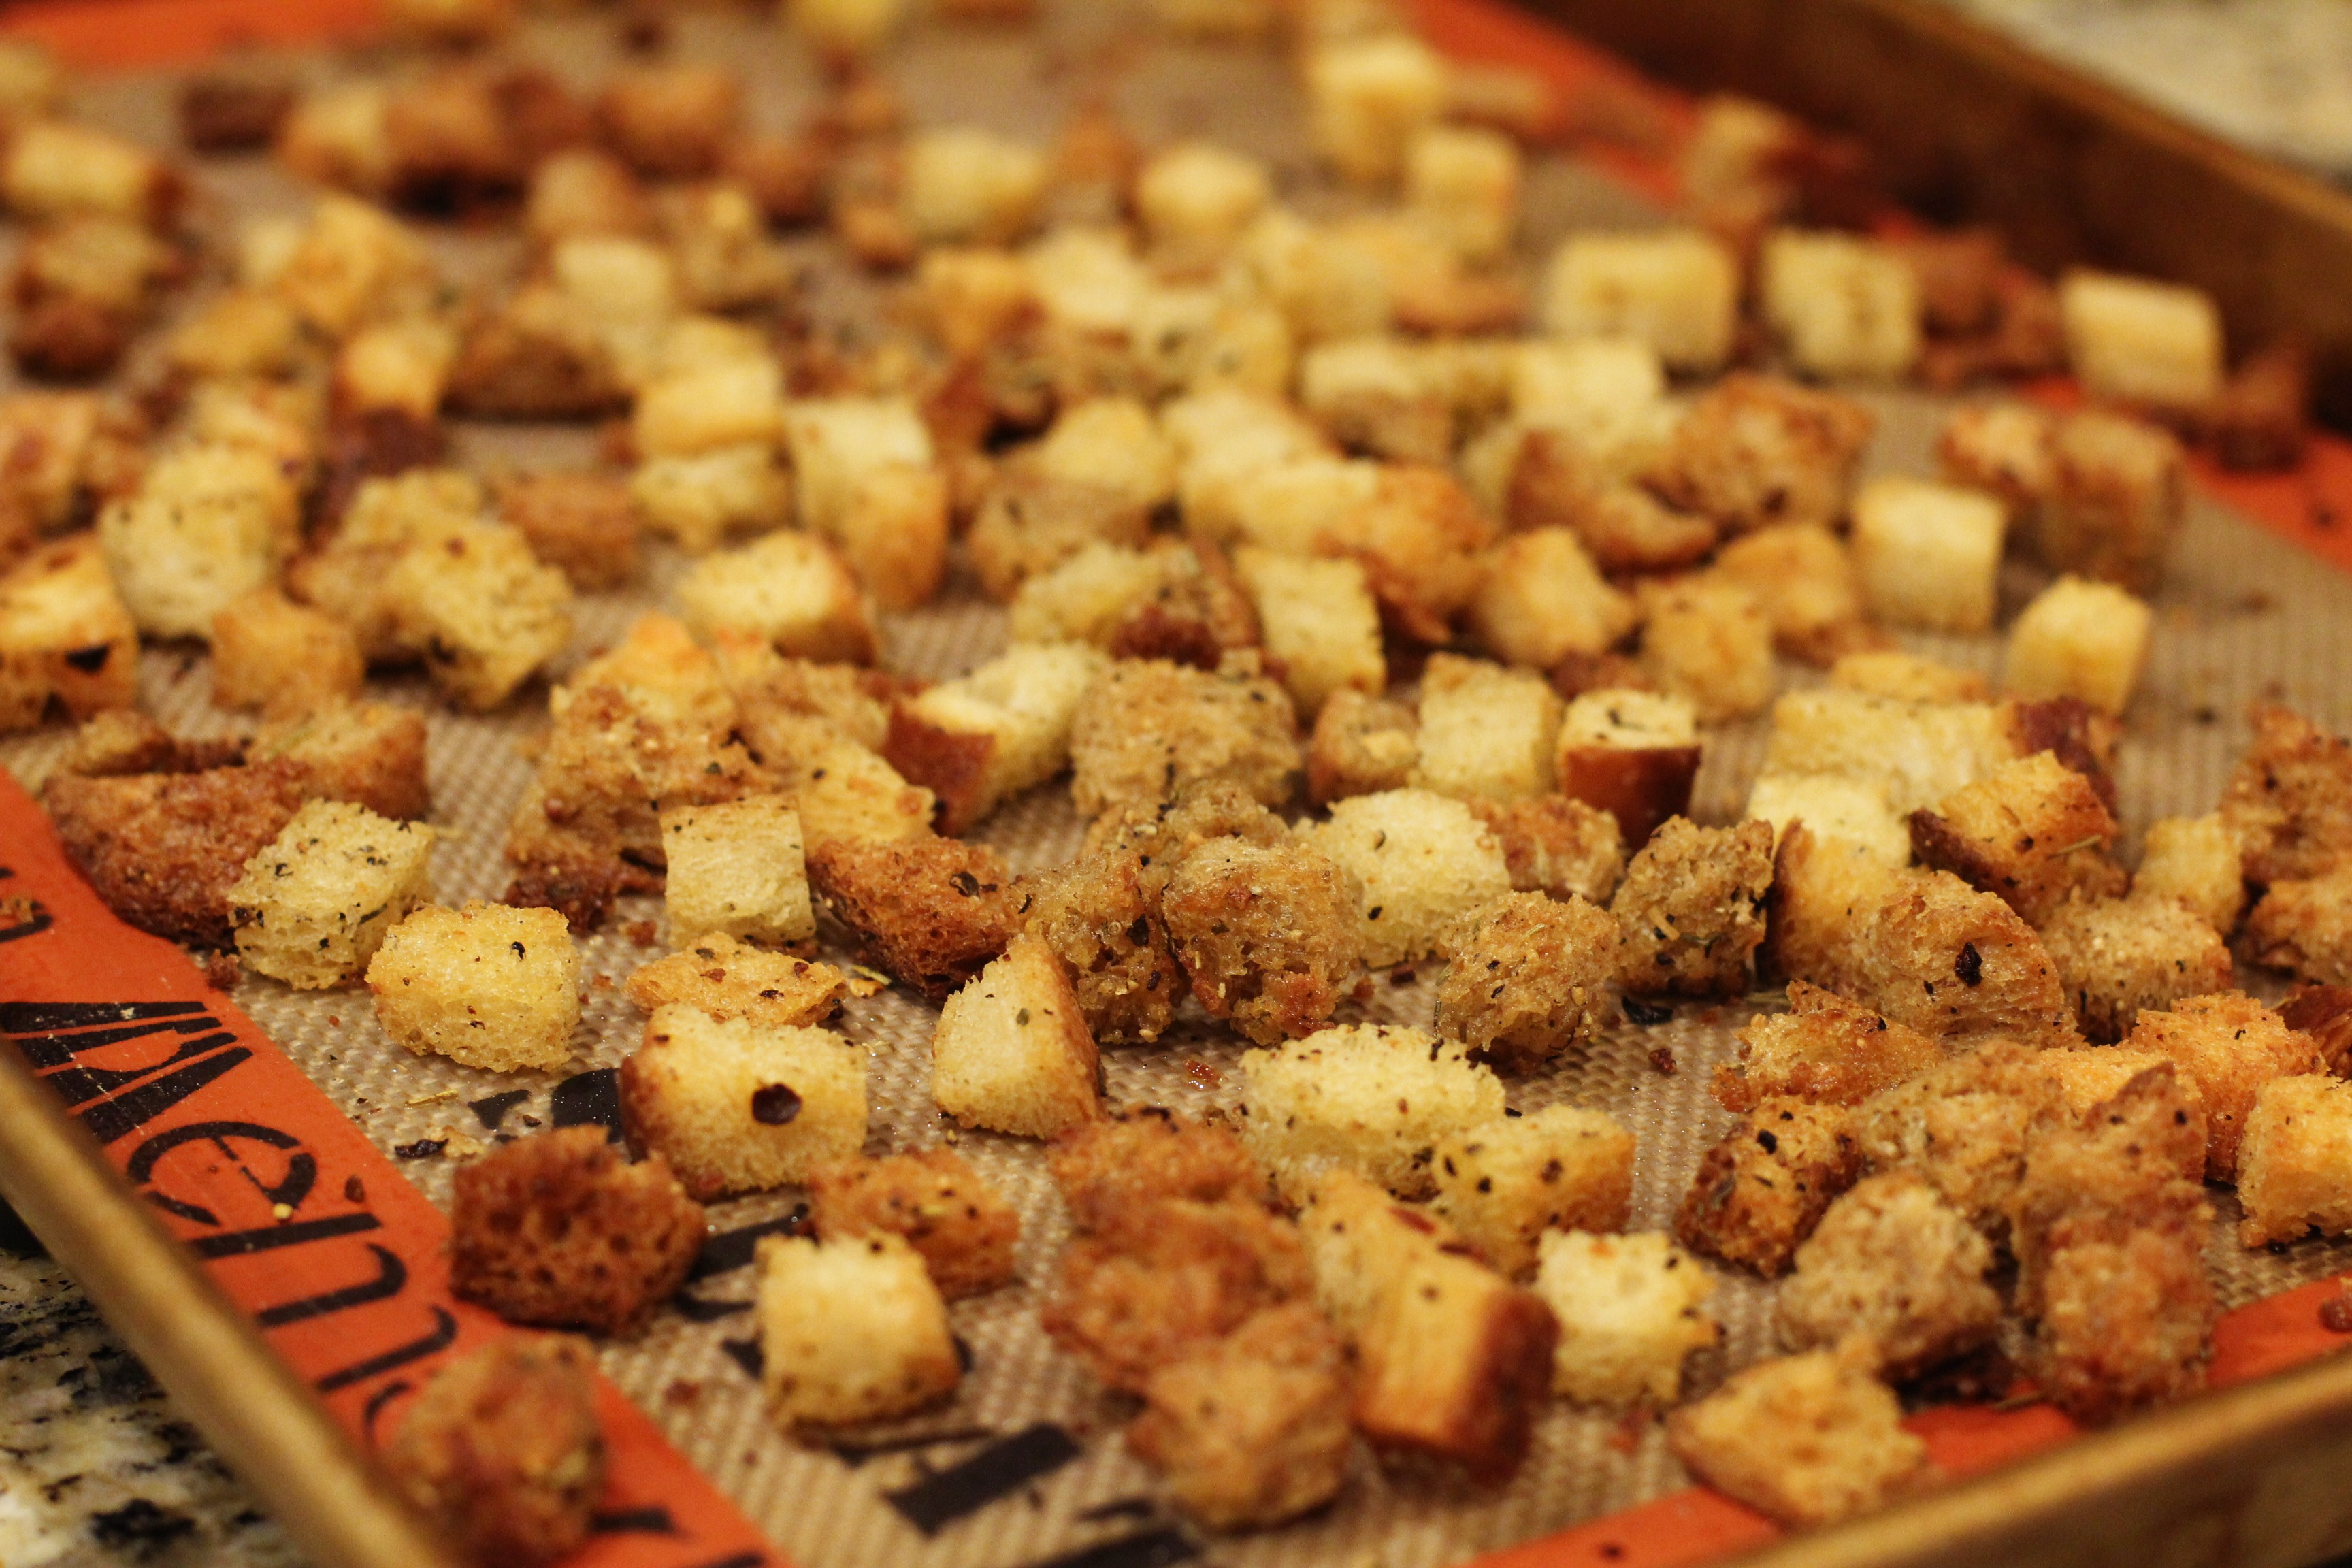 Recipe: How To Make Croutons | One Hundred Dollars a Month